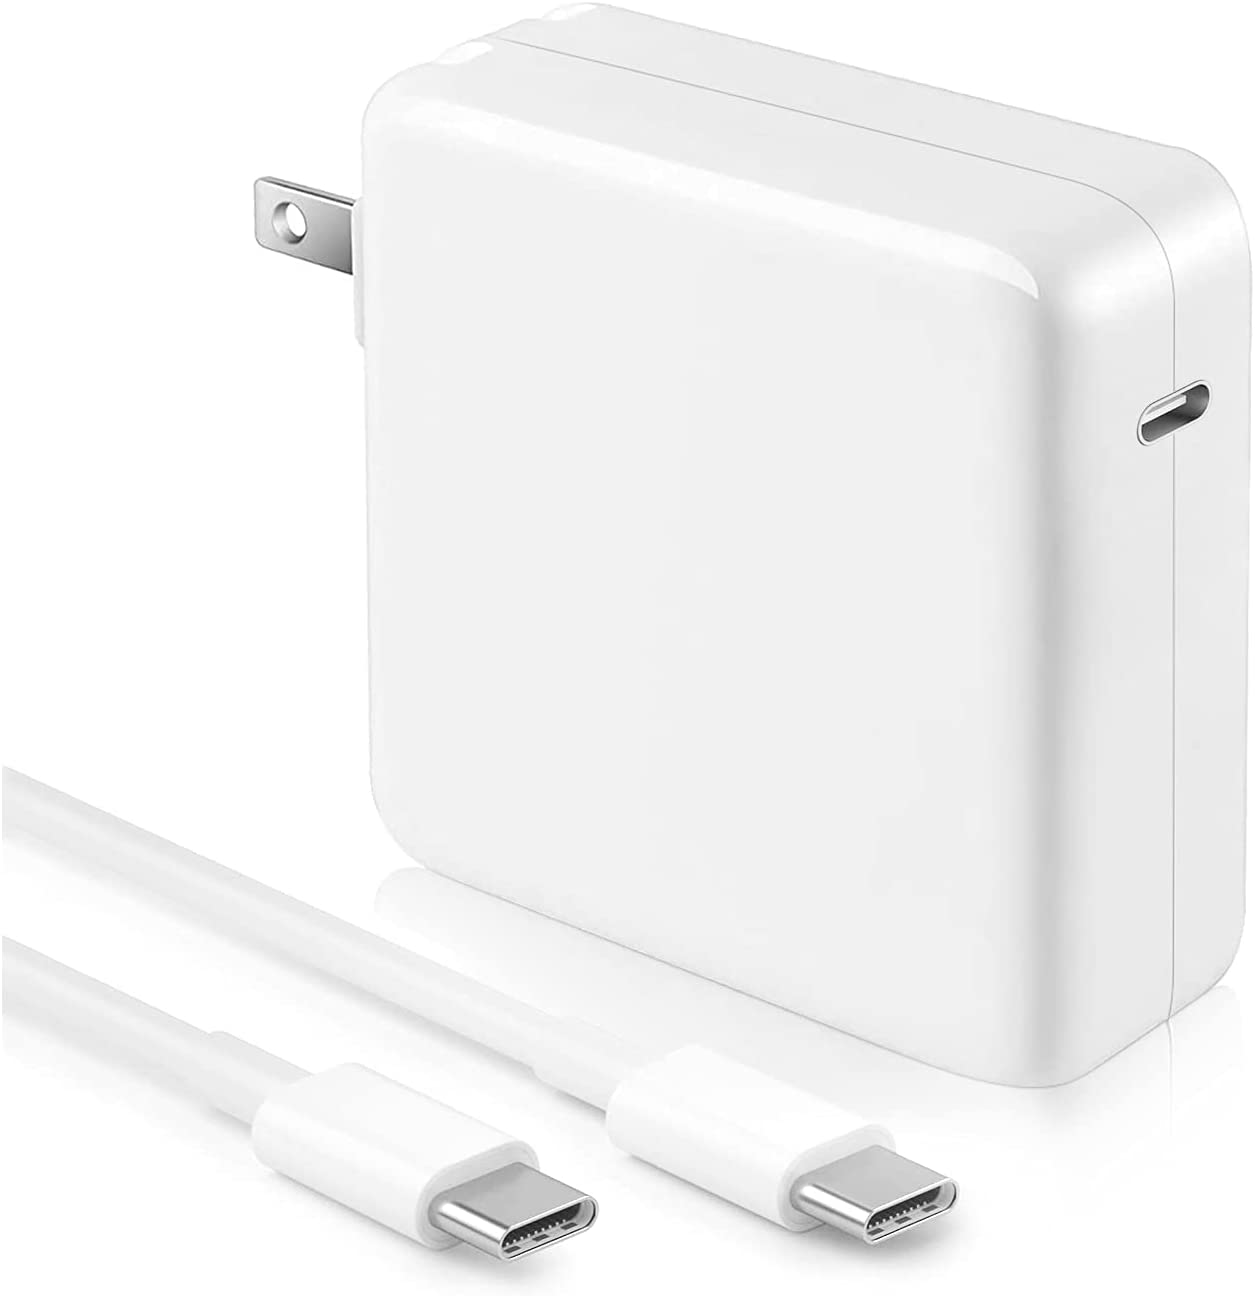 Mac Book Pro Charger - 100W USB C Charger Power Adapter for USB C MacBook Pro 16 15 13 Inch, MacBook Air 13 Inch 2021 2020 2019 2018, New iPad Pro, Include Charge Cable(7.2ft/2.2m)